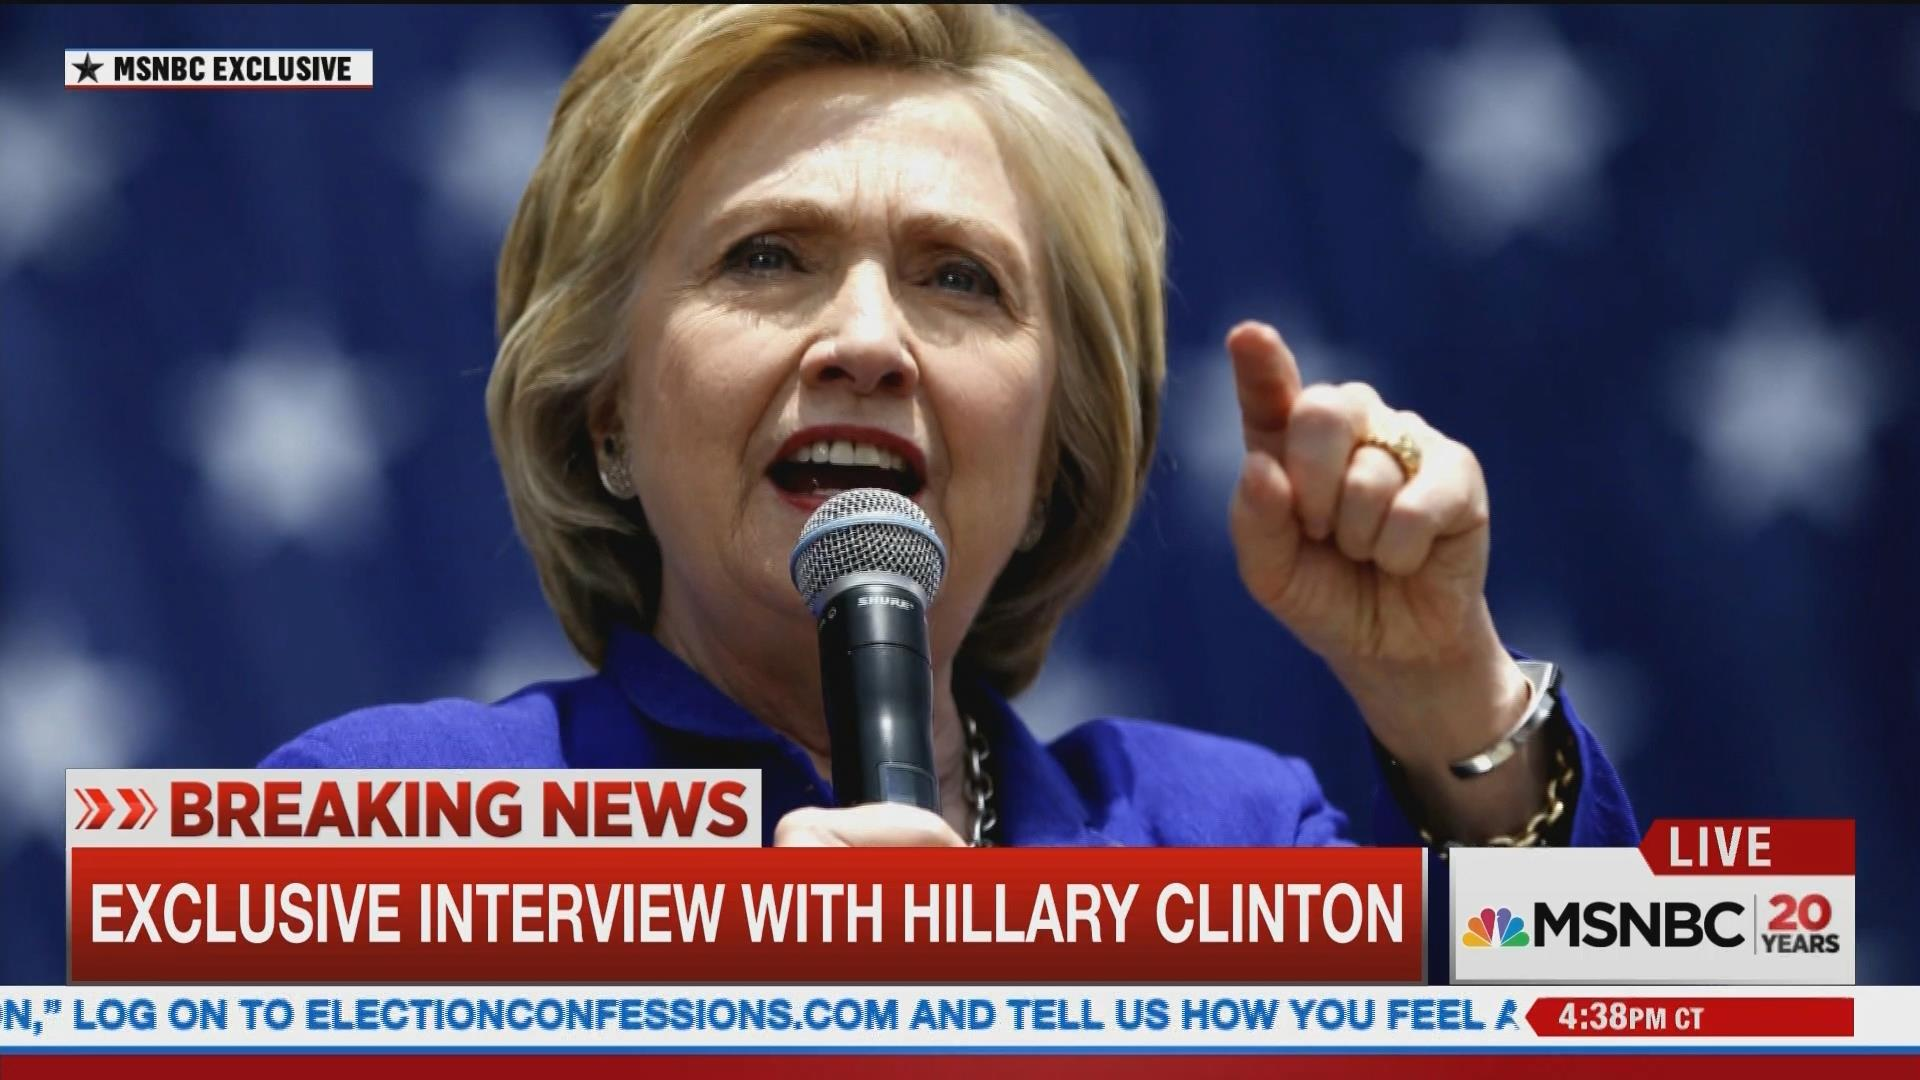 MSNBC Exclusive: Hillary Clinton's First Interview After FBI Meeting - NBC News